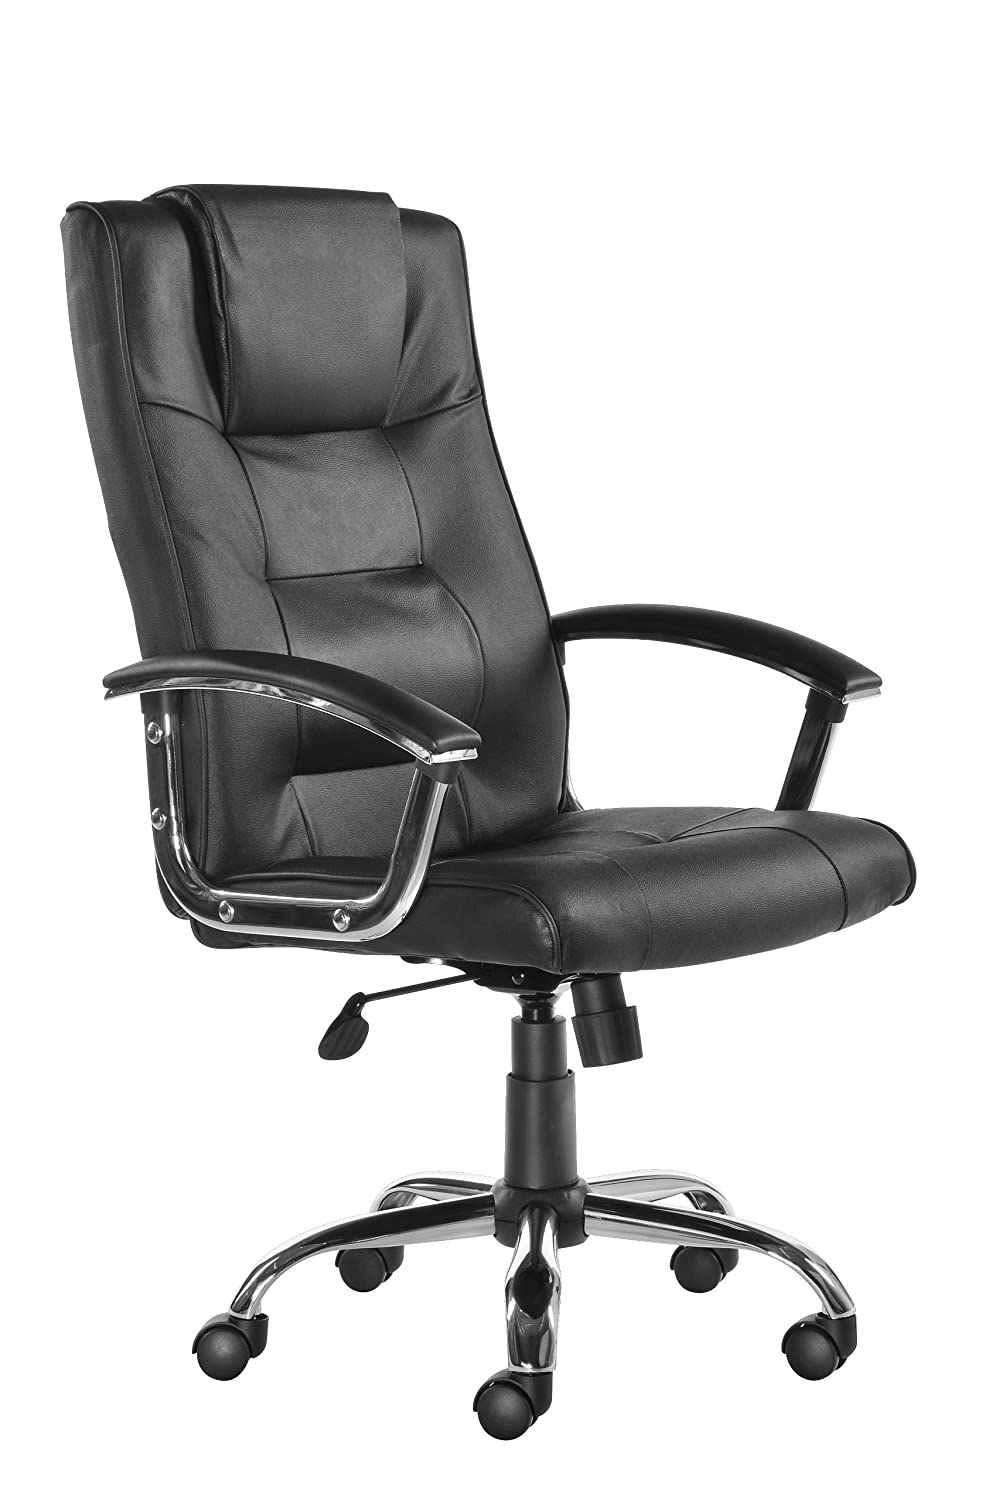 Somerset Leather Faced Executive Office Chair with Pronounced